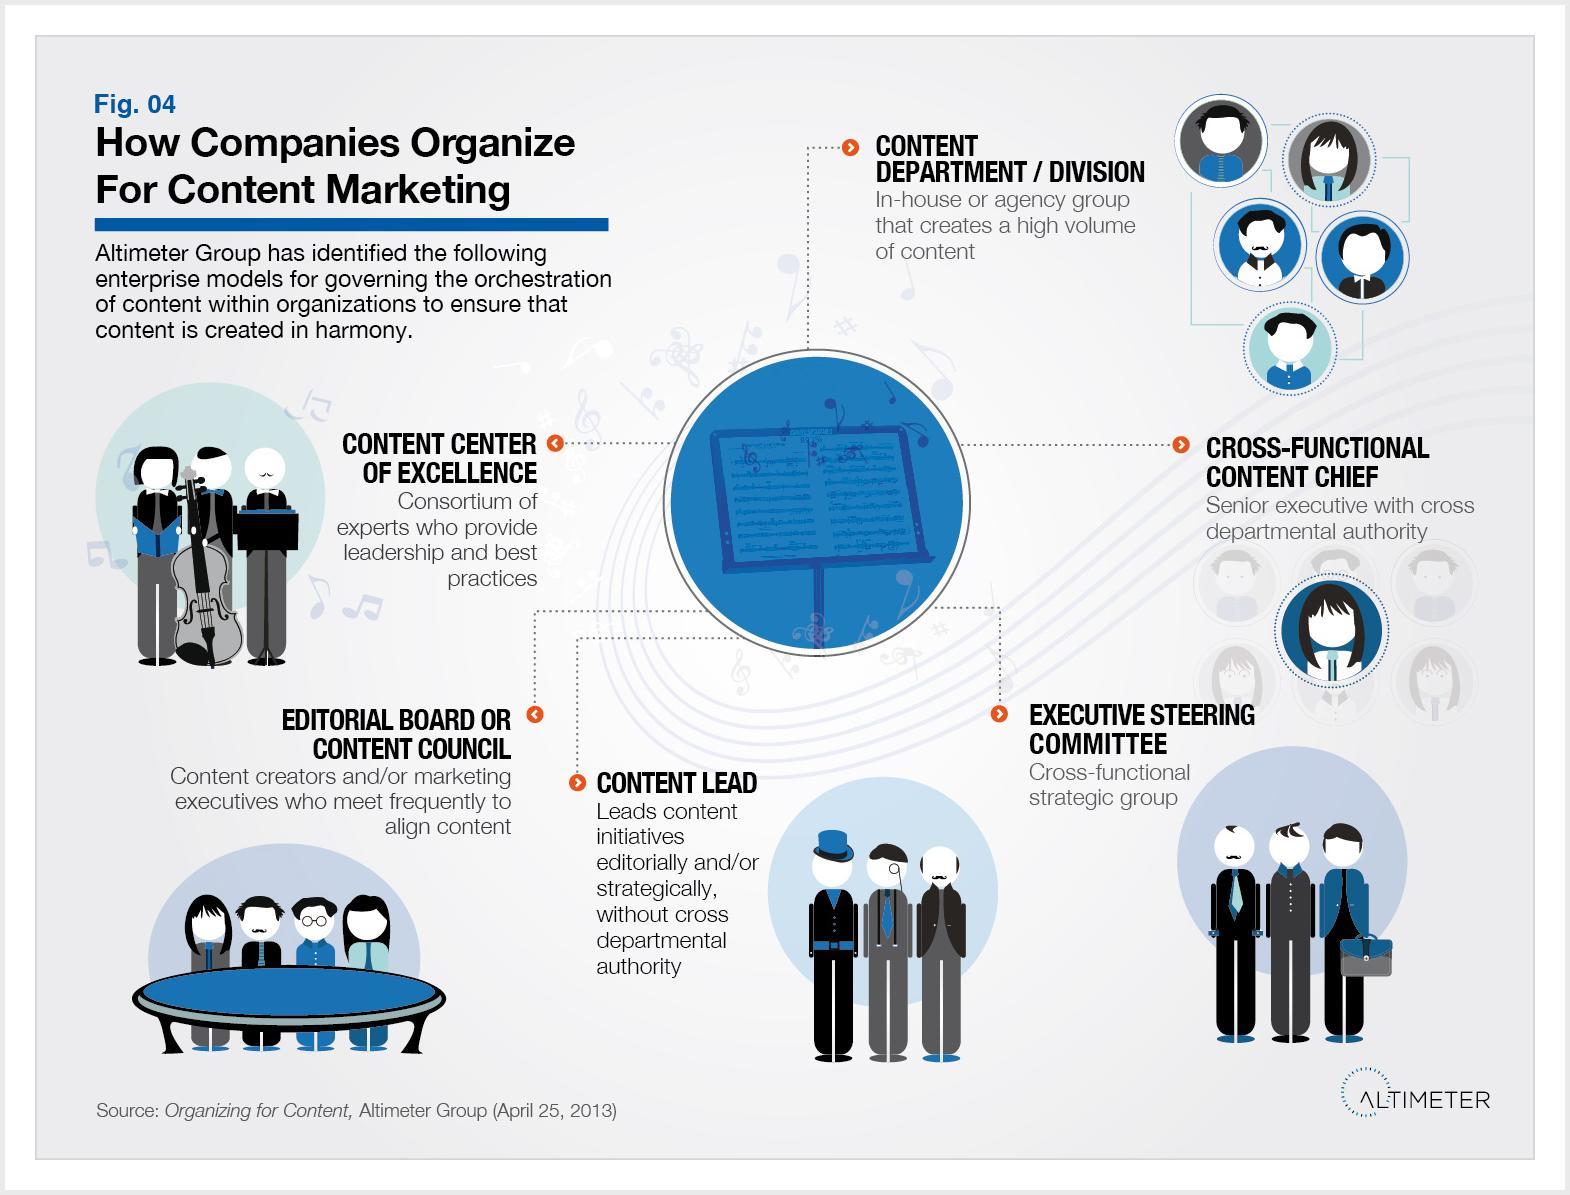 How Companies Organize for Content Marketing